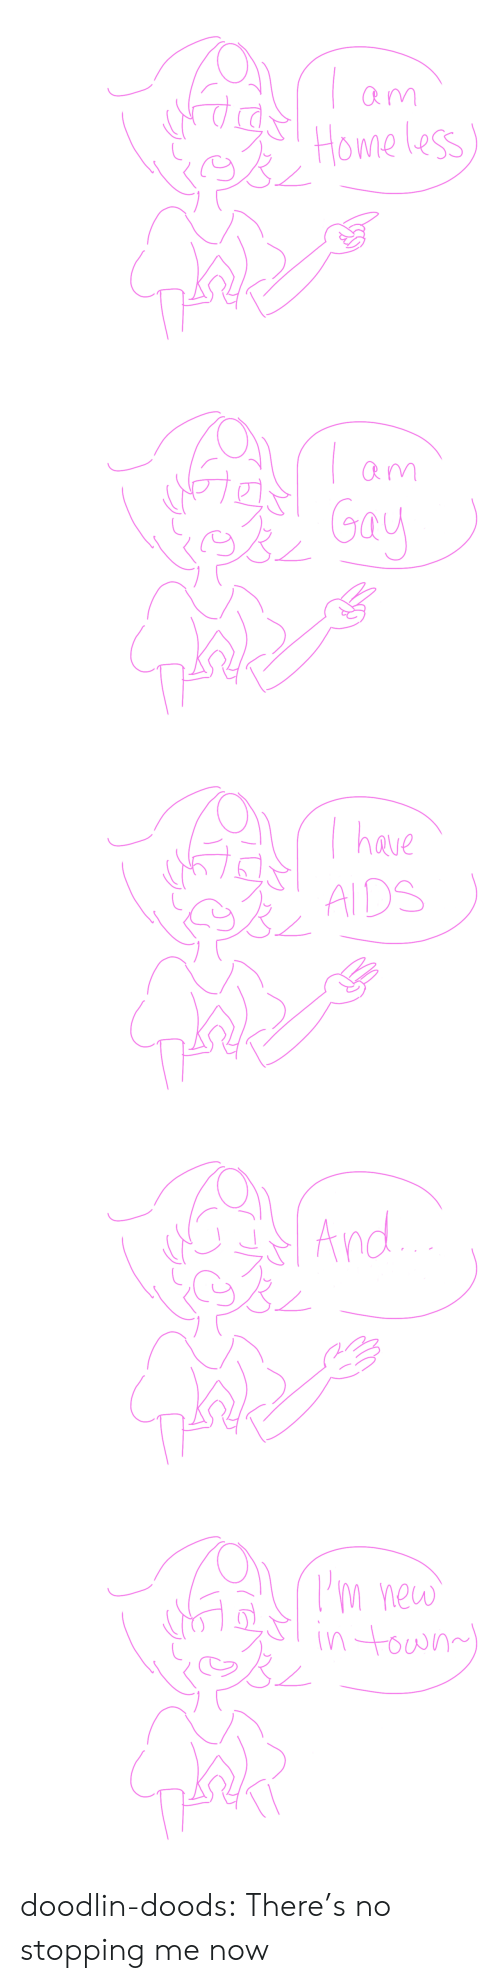 aids: Rm  Home less   Rm  Gay   have  AIDS   And   m new  in town doodlin-doods:  There's no stopping me now